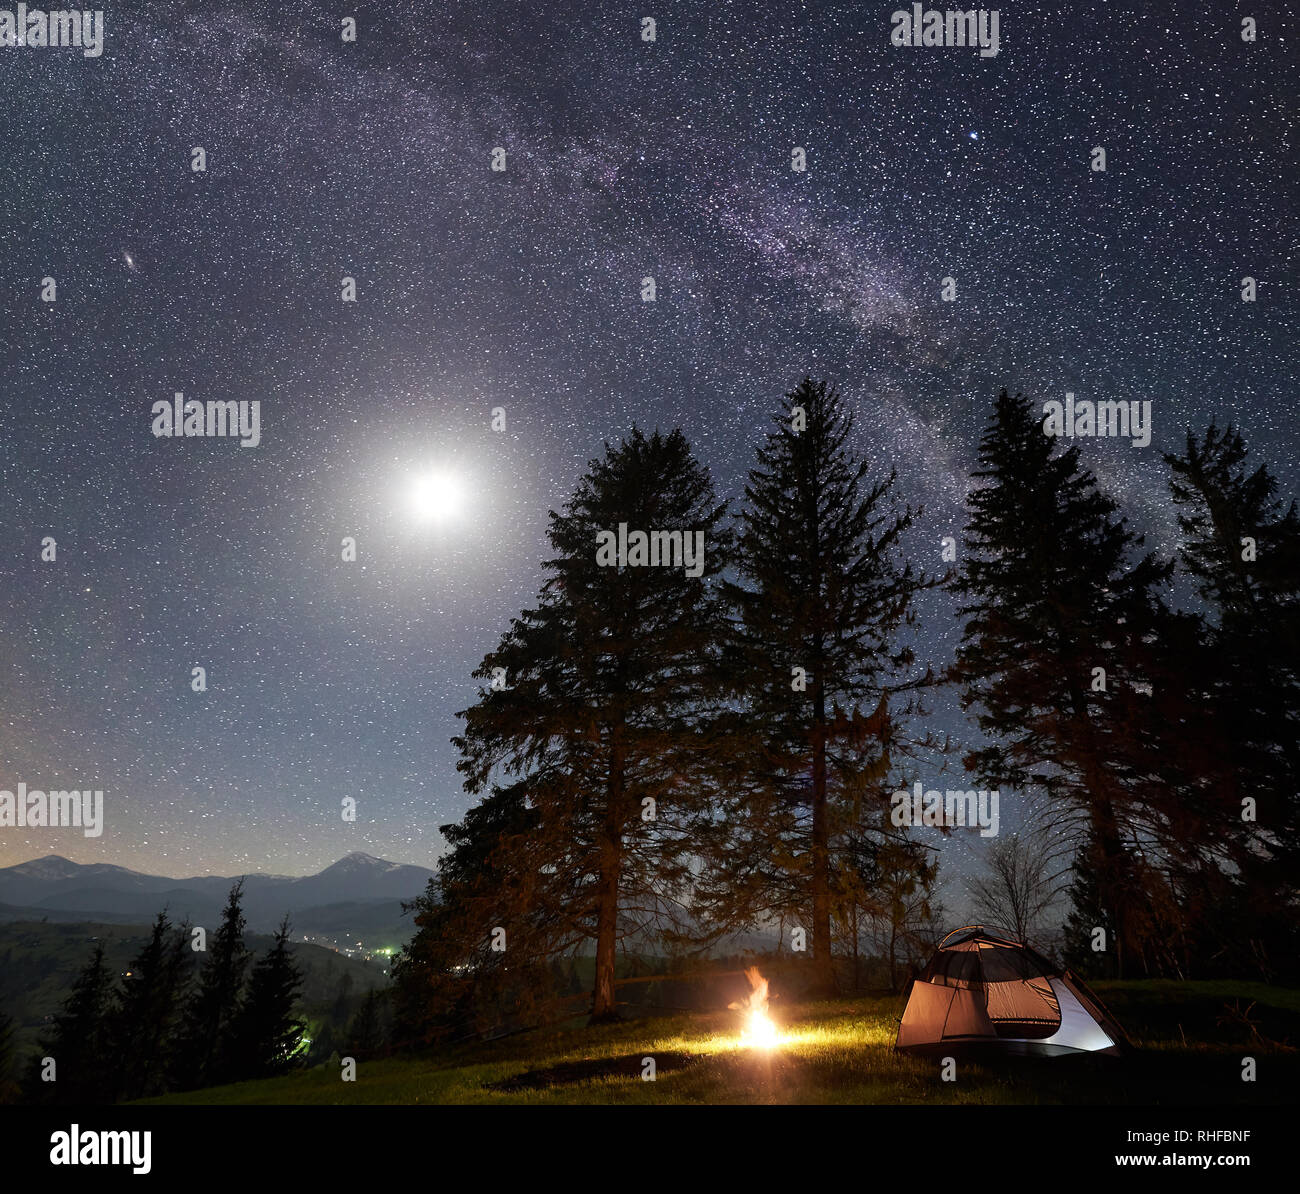 Night camping in mountains  Tourist tent by burning campfire under